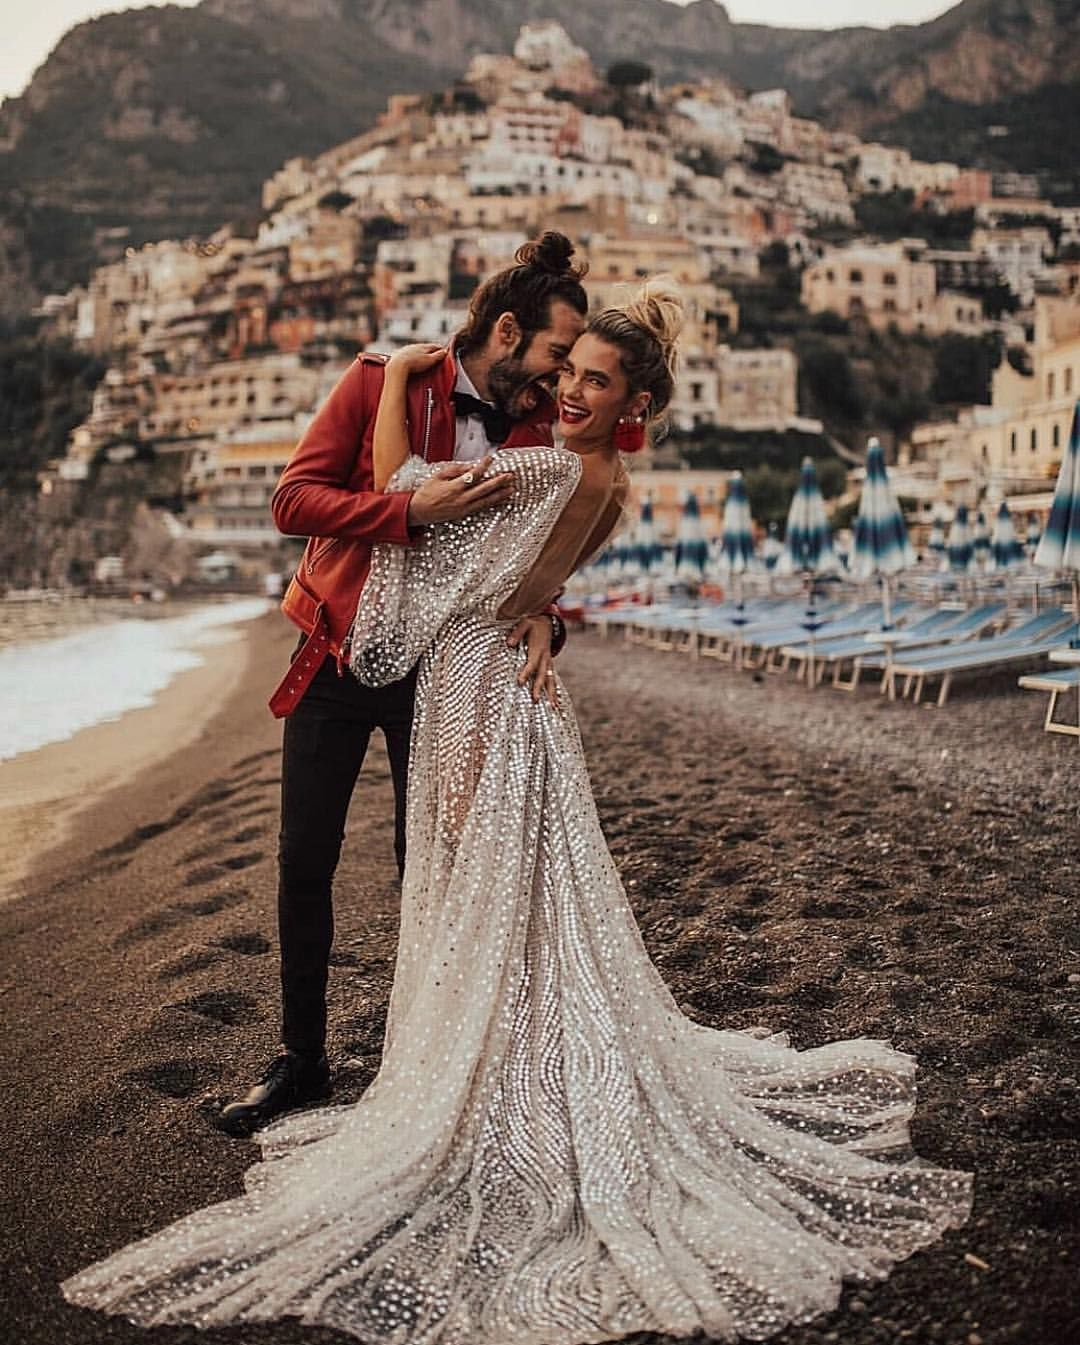 Chosen Babe Officiallyquigley Wearing The Toby Gown In Positano